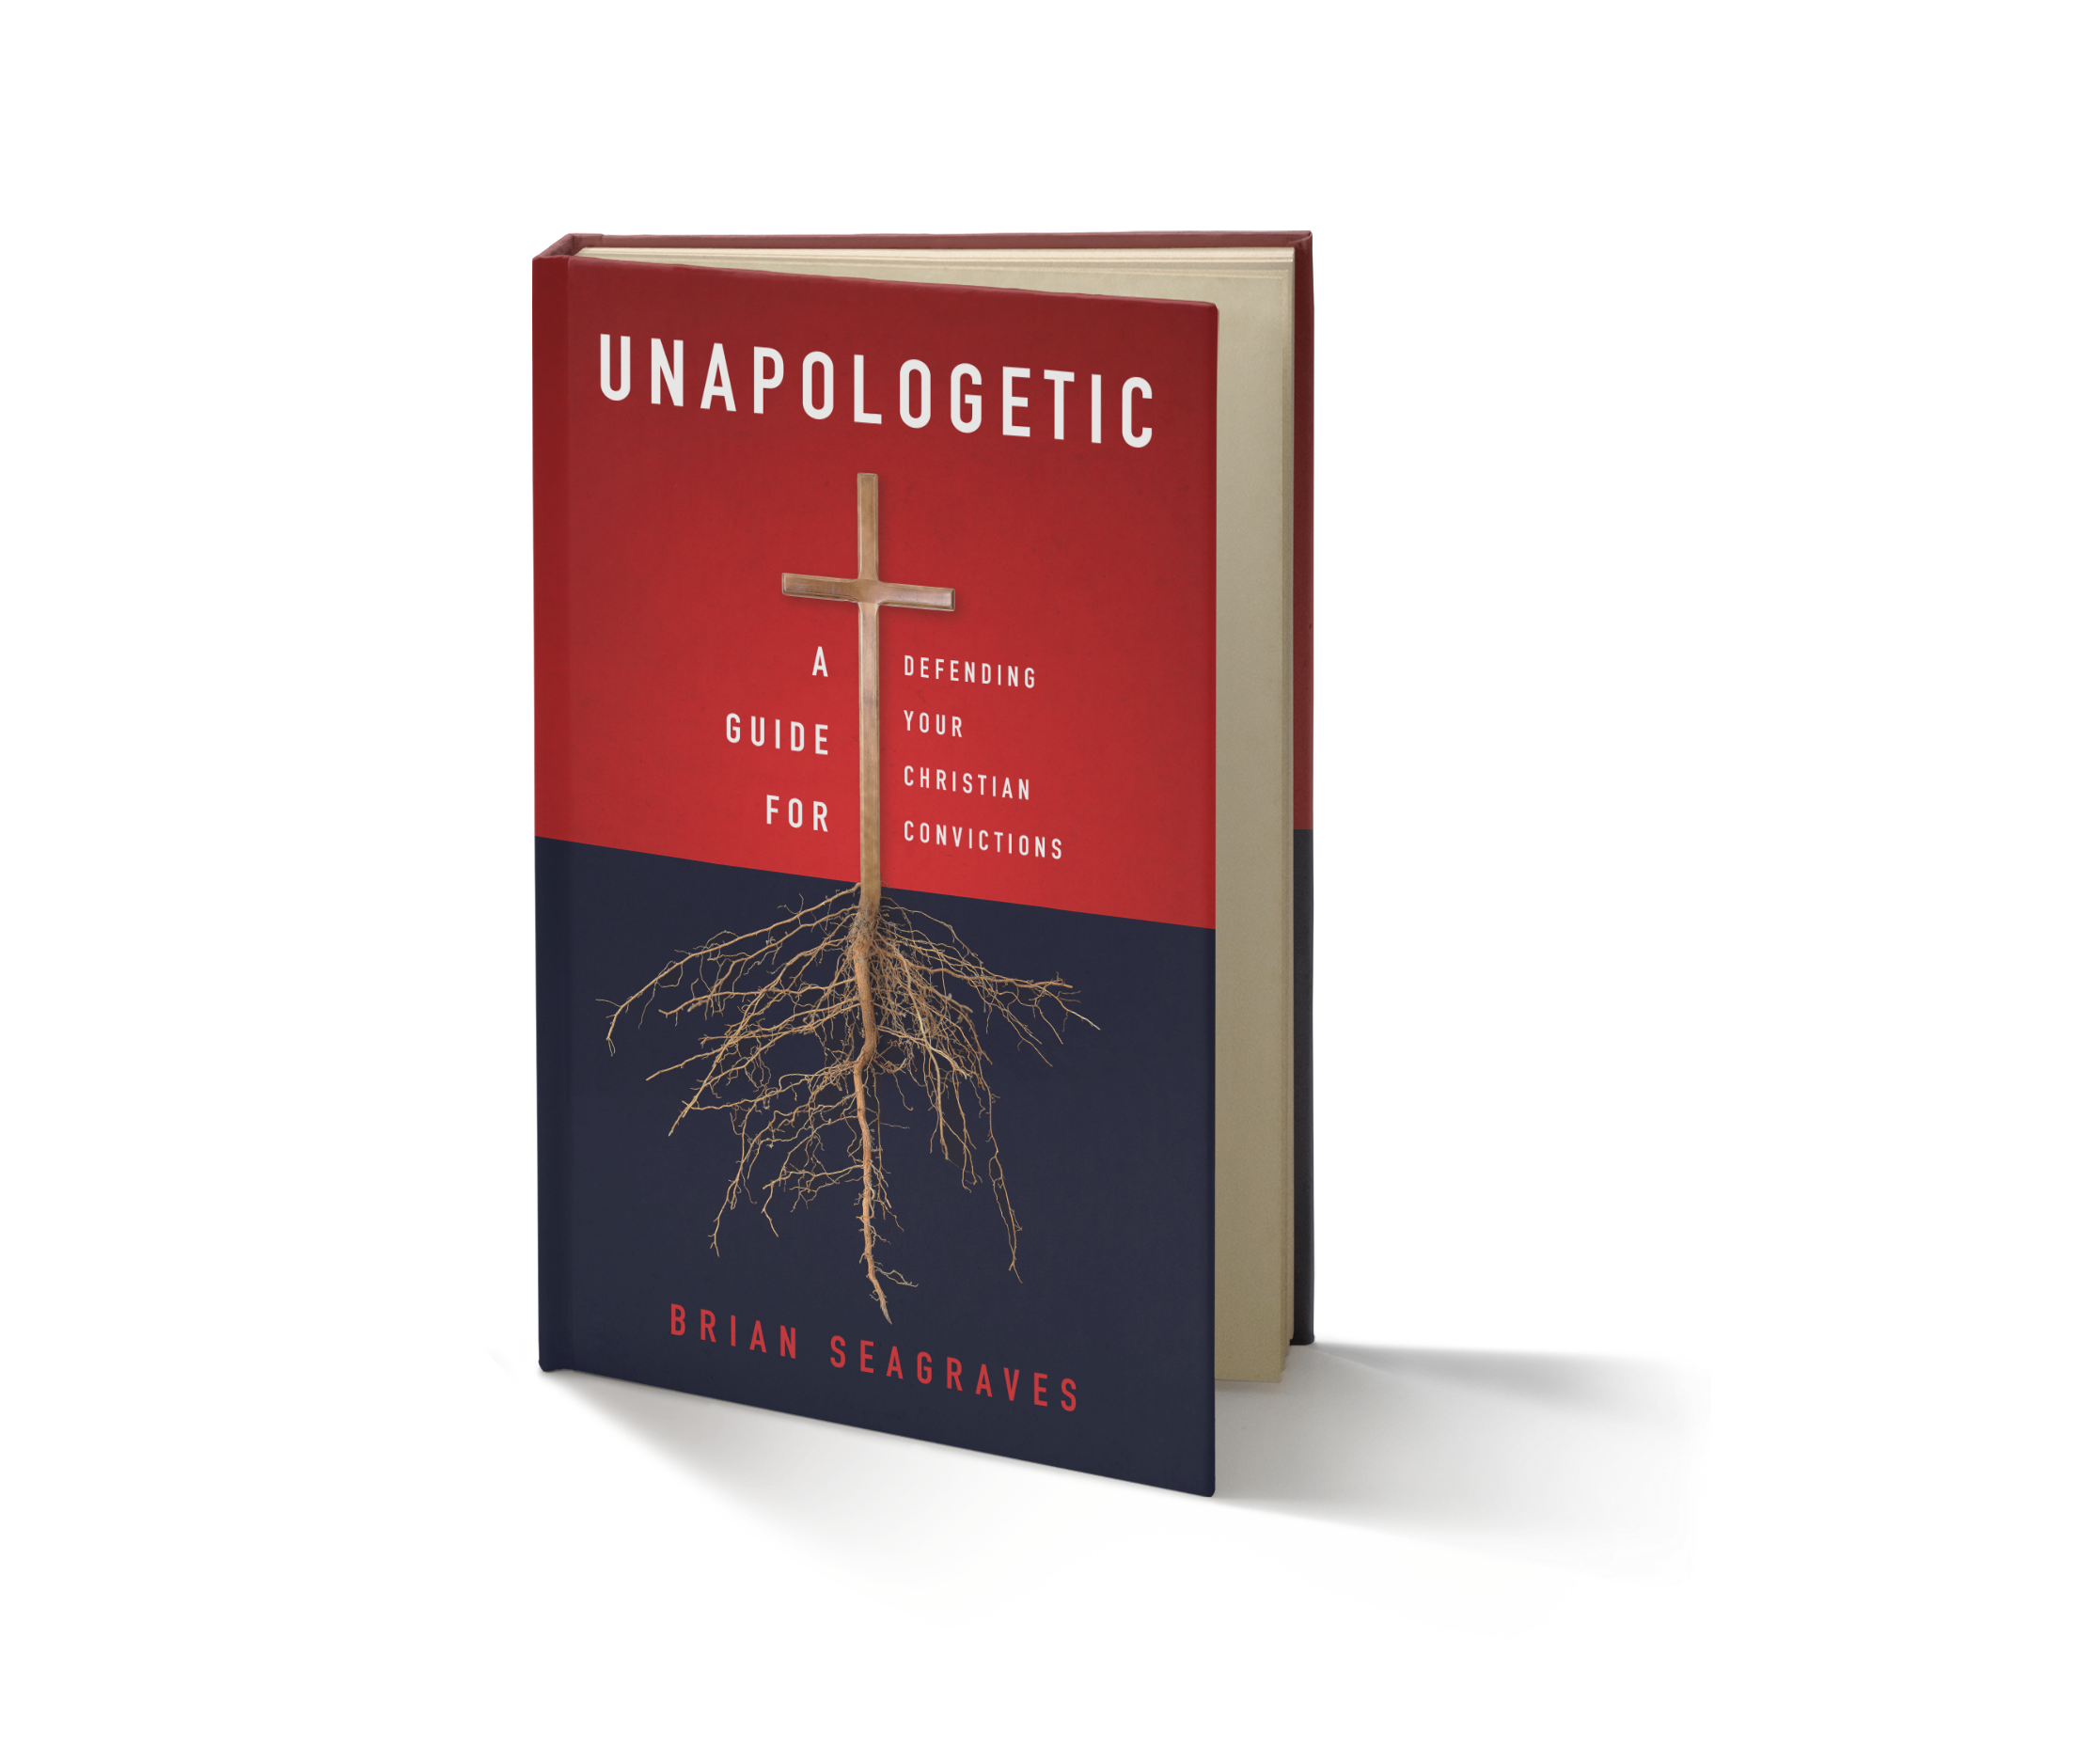 Unapologetic_cover_3DMockup_transparentbackground 2.png